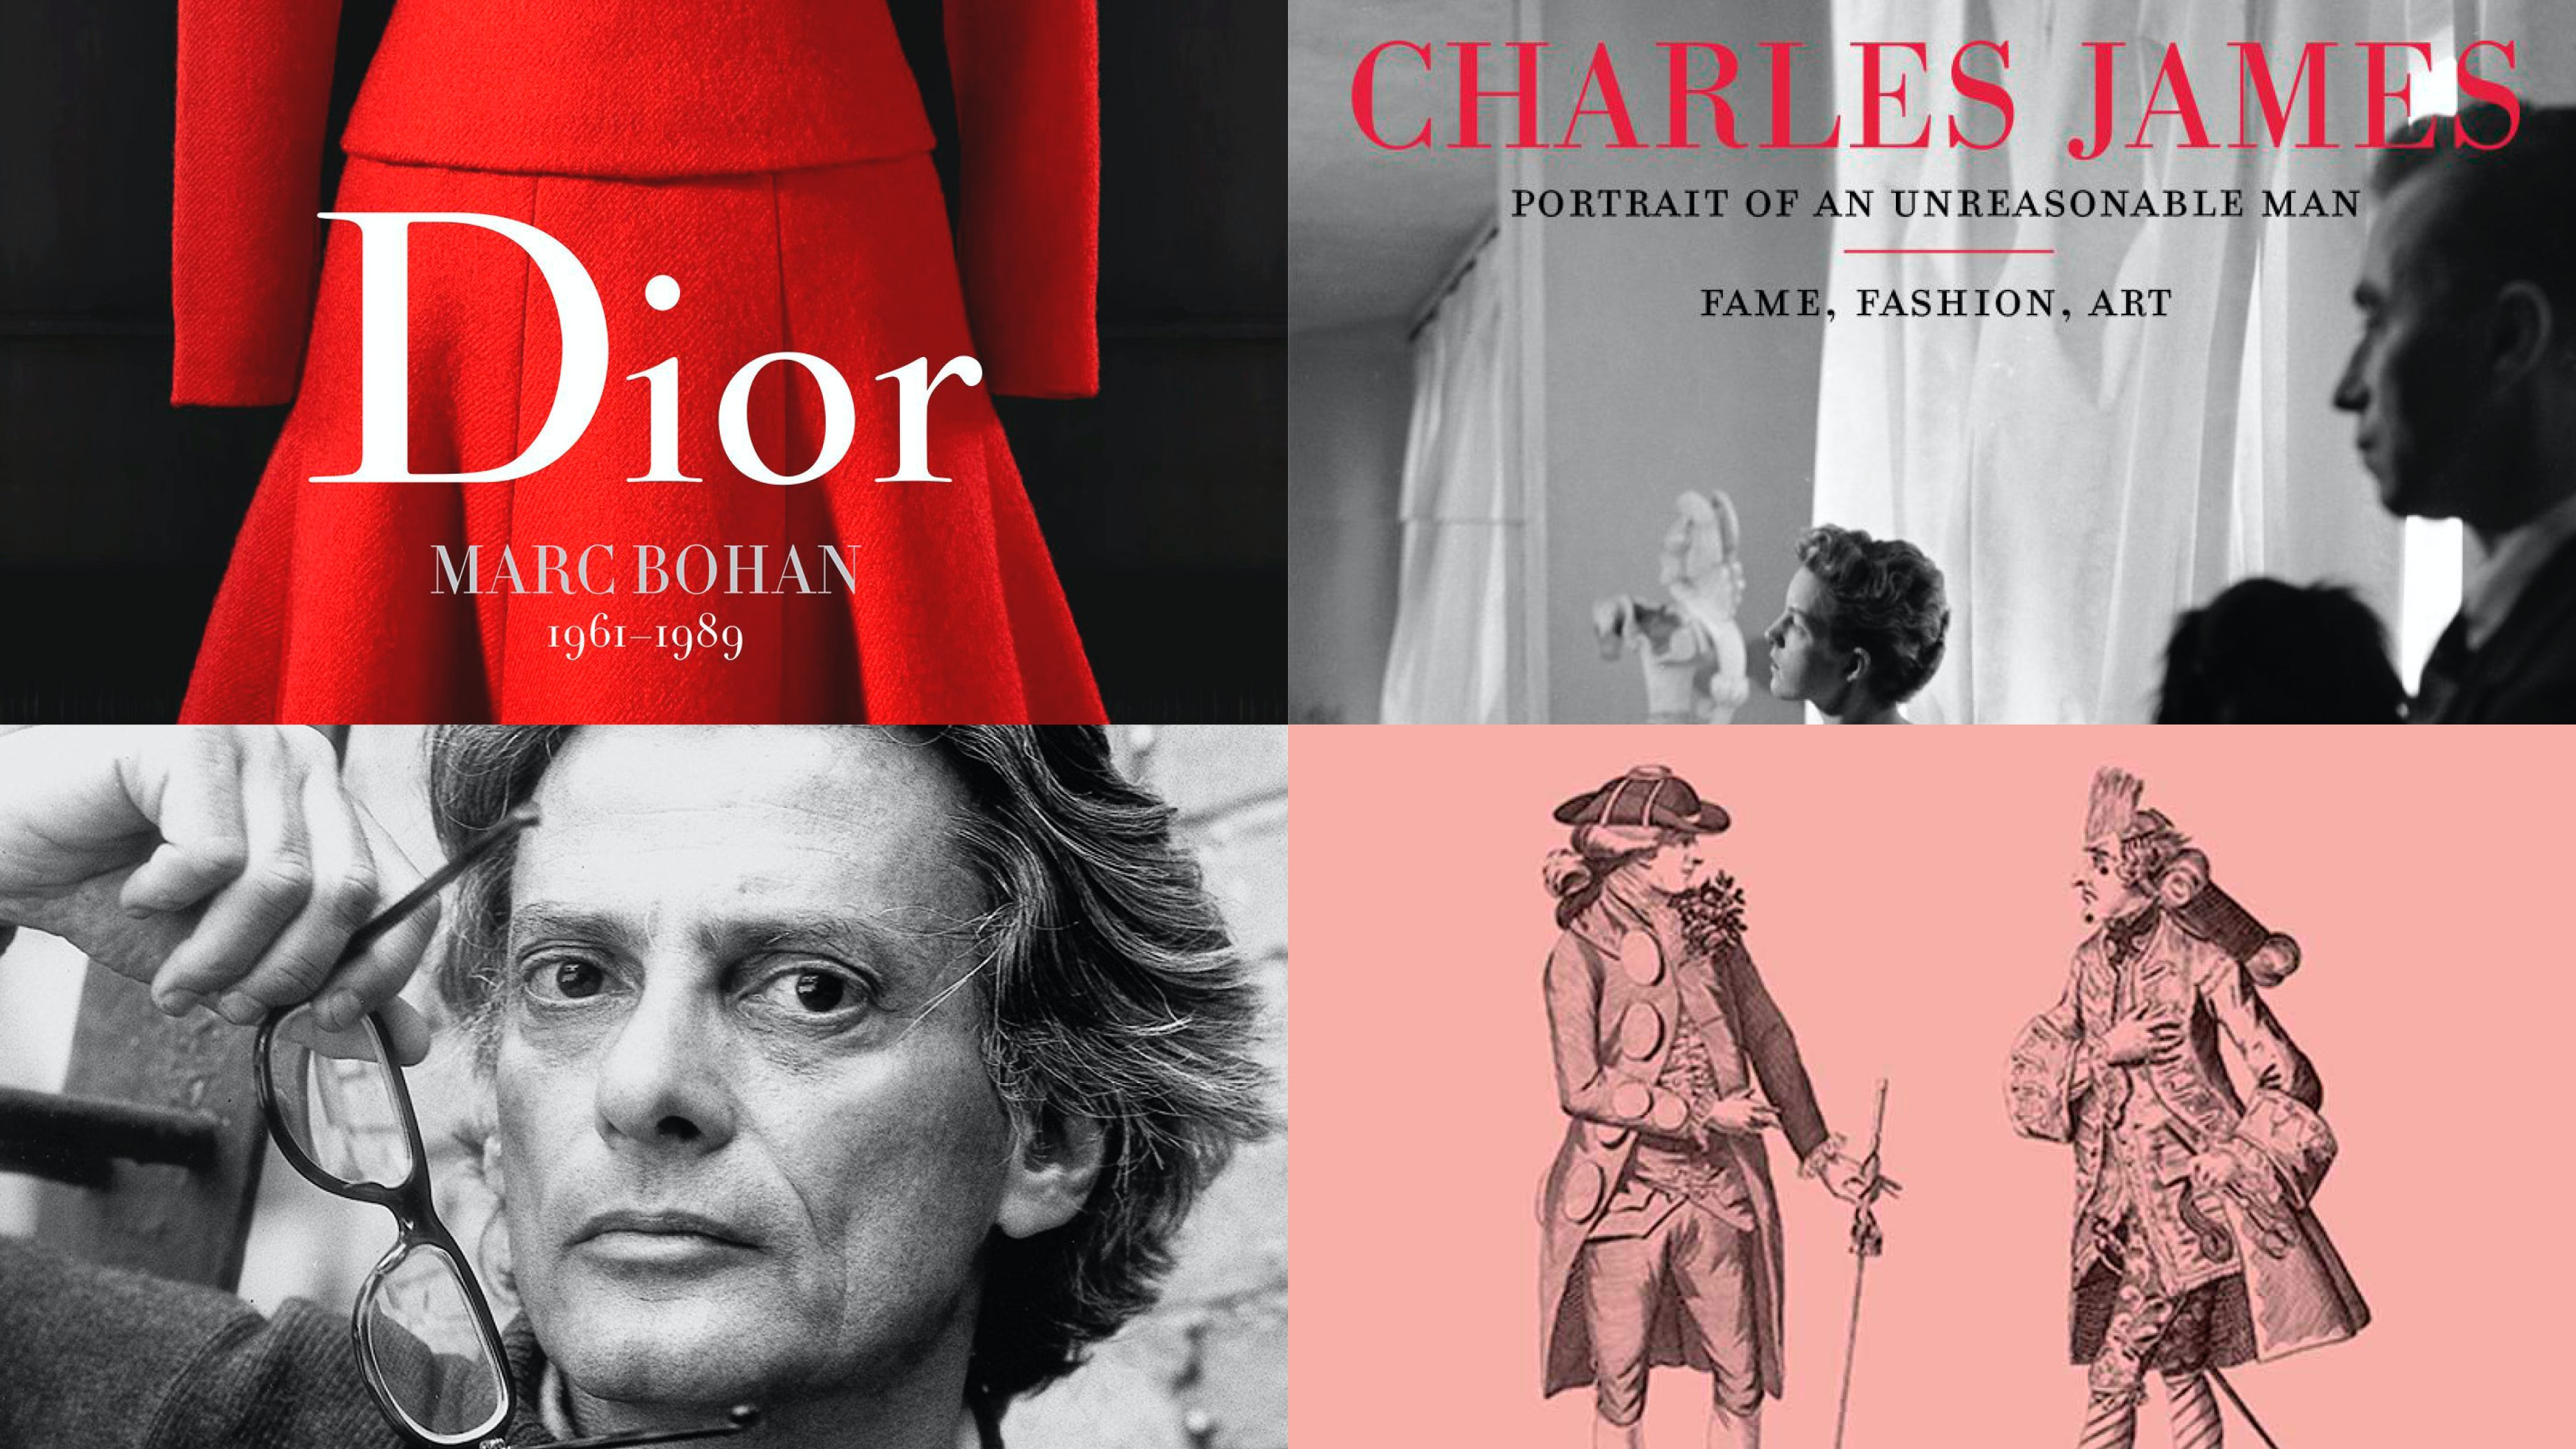 From left, clockwise: Dior by Marc Bohan; Charles James: Portrait of an Unreasonable Man; Pretty Gentlemen; Avedon: Something Personal   Source: Courtesy